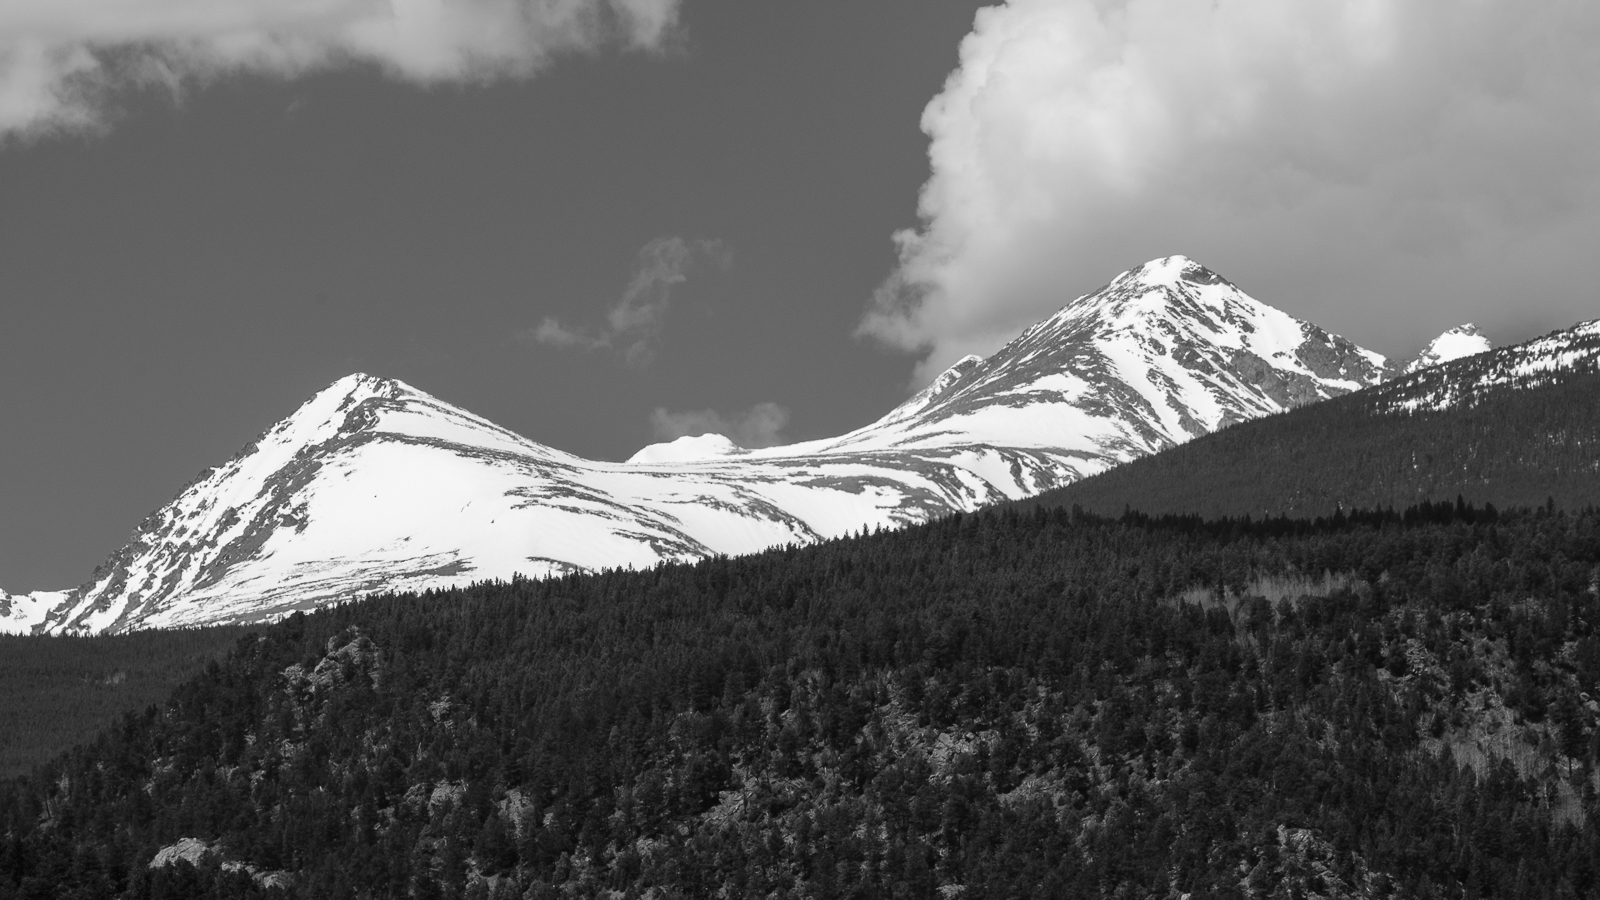 Day 154- 365 Day B&W Photo Challenge - Views of the Indian Peaks on a warm spring day - Fuji X-T3, XF50-140mm f/2.8, Acros R Film Simulation